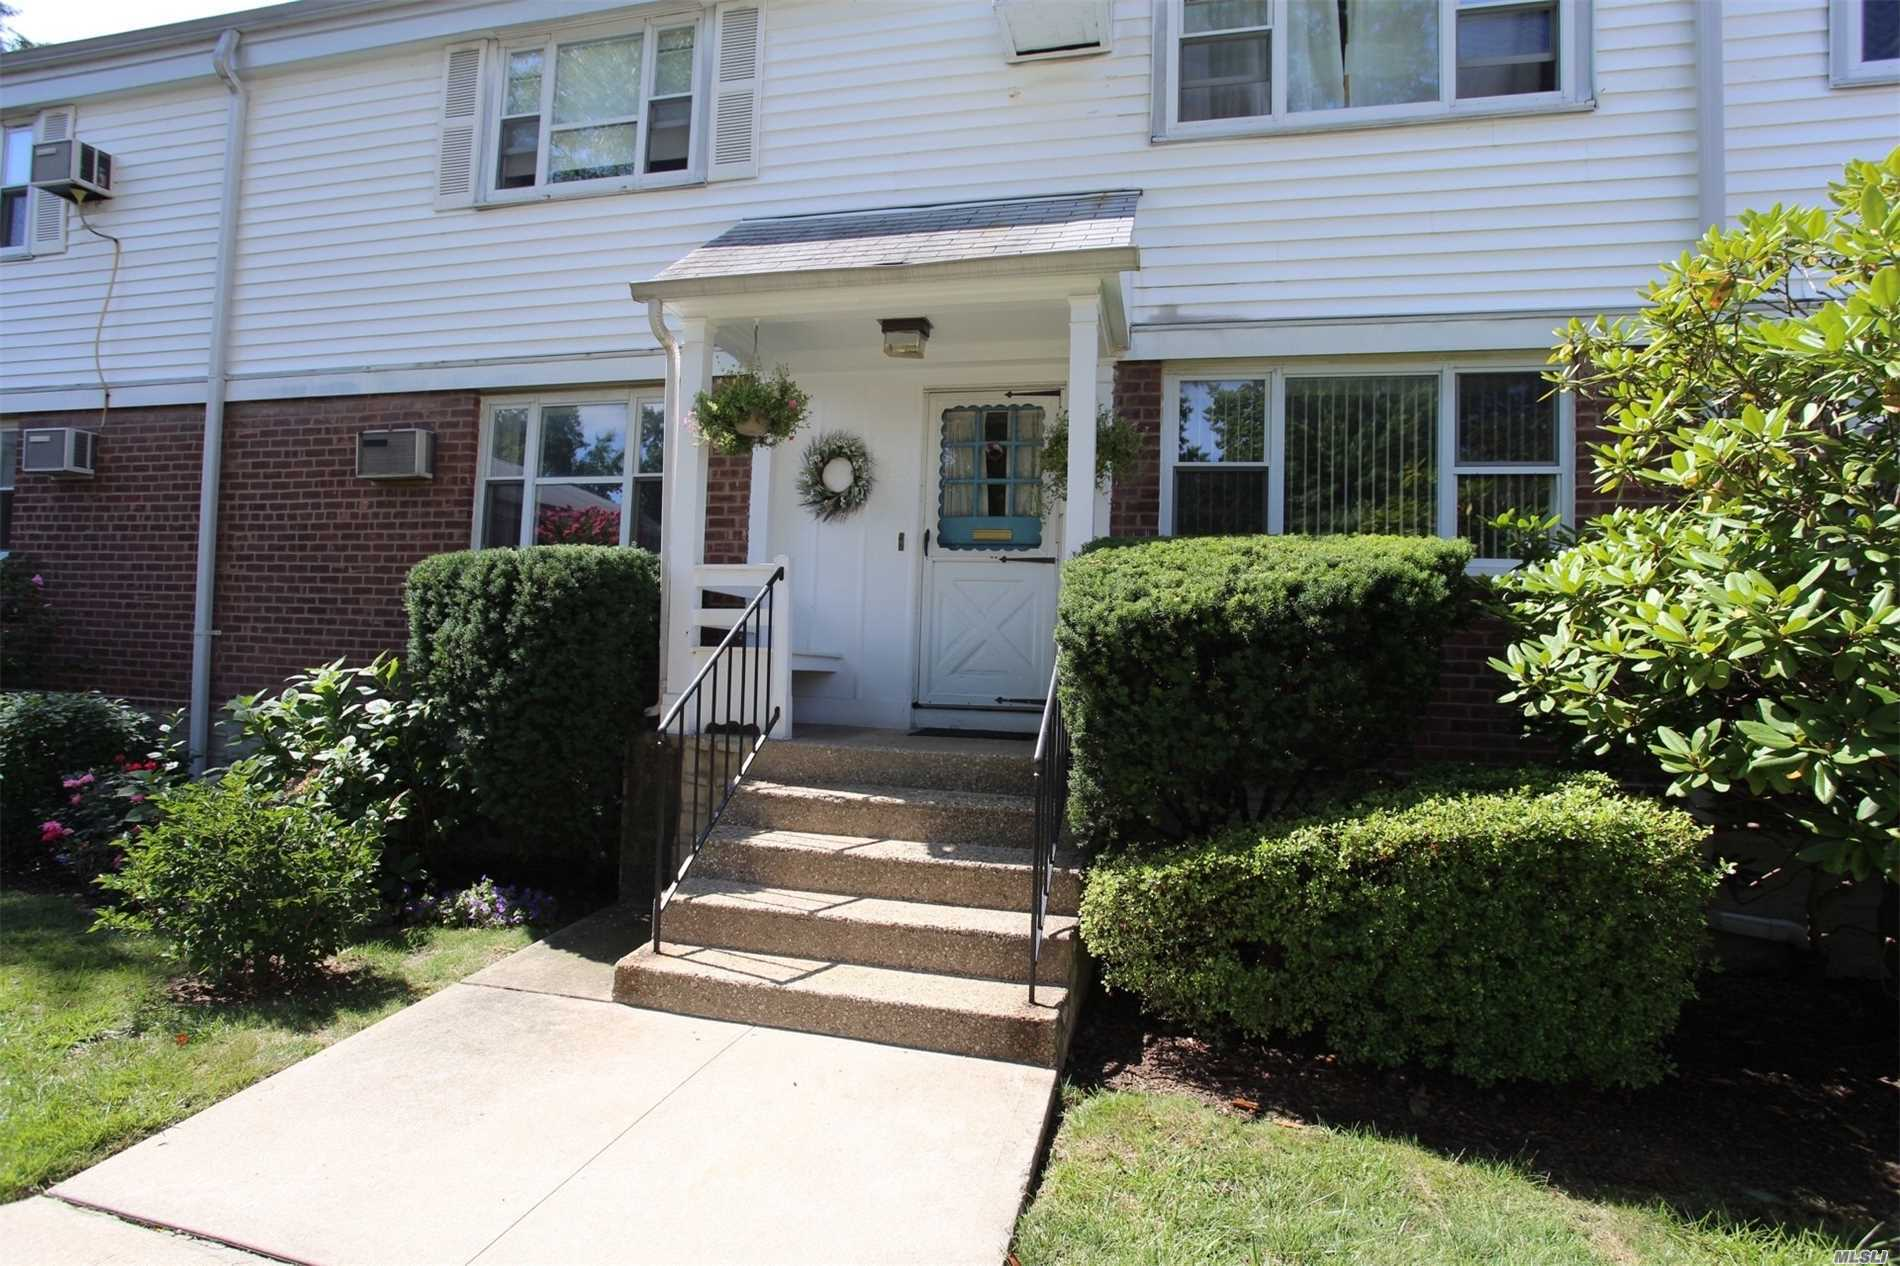 2 Bedroom First Floor Garden Apartment. Walk To Bay Terrace Shopping Center, Library, Bay Terrace Pool Club (Not Part Of Coop), Elementary / Middle School, Express Bus, Bus To Flushing & Lirr. Washer, Dryer & Dishwasher Are Permitted.